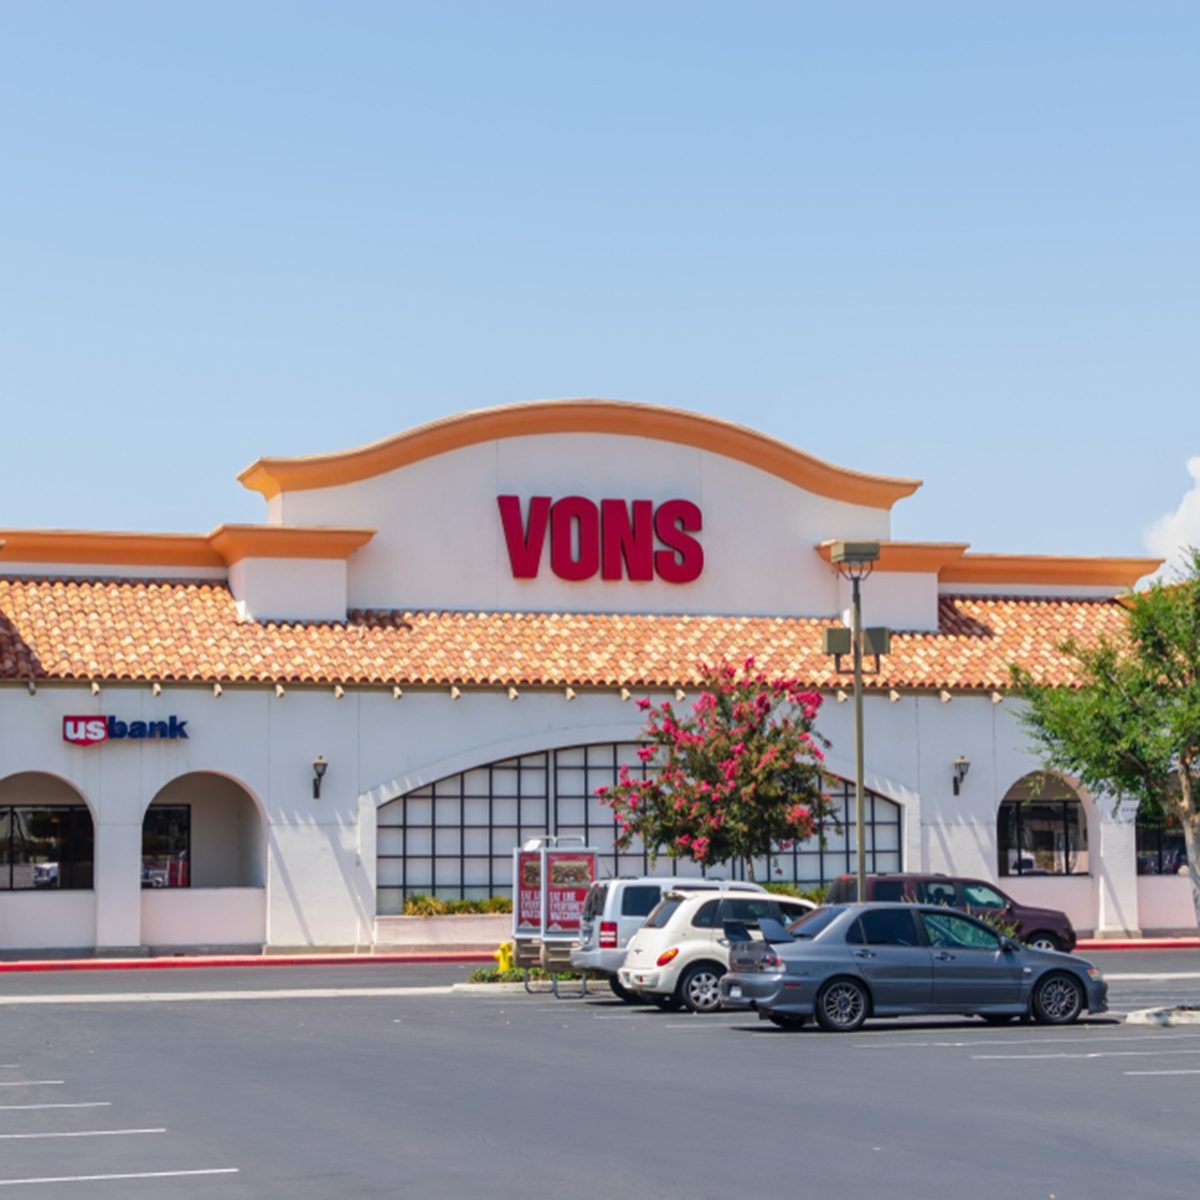 Vons grocery store entrance and parking lot with pharmacy and USA Bank inside.